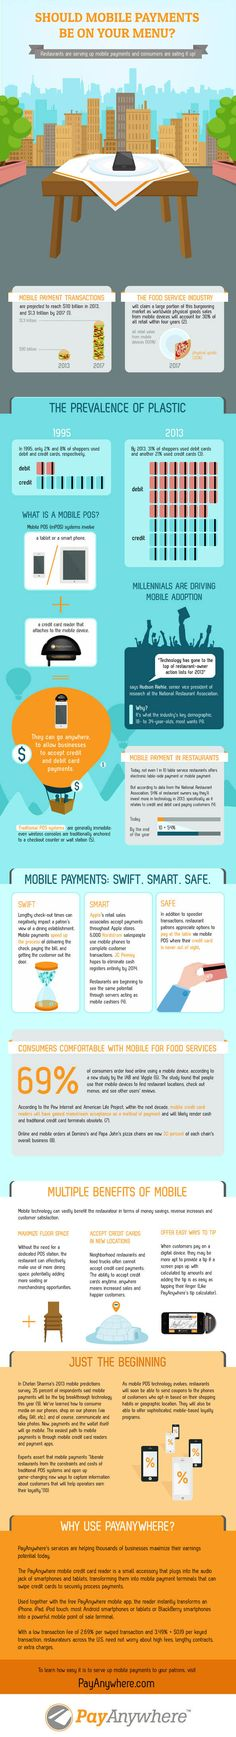 #INFOgraphic > Mobile Payments in Restaurants: Mobile payment transactions are expected to reach $1.3 trillion by 2017. This report examines the current state of mobile payment adoption in the food service industry and how mobile POS technology can benefit restaurants.  > http://infographicsmania.com/restaurant-mobile-payments-on-your-menu/